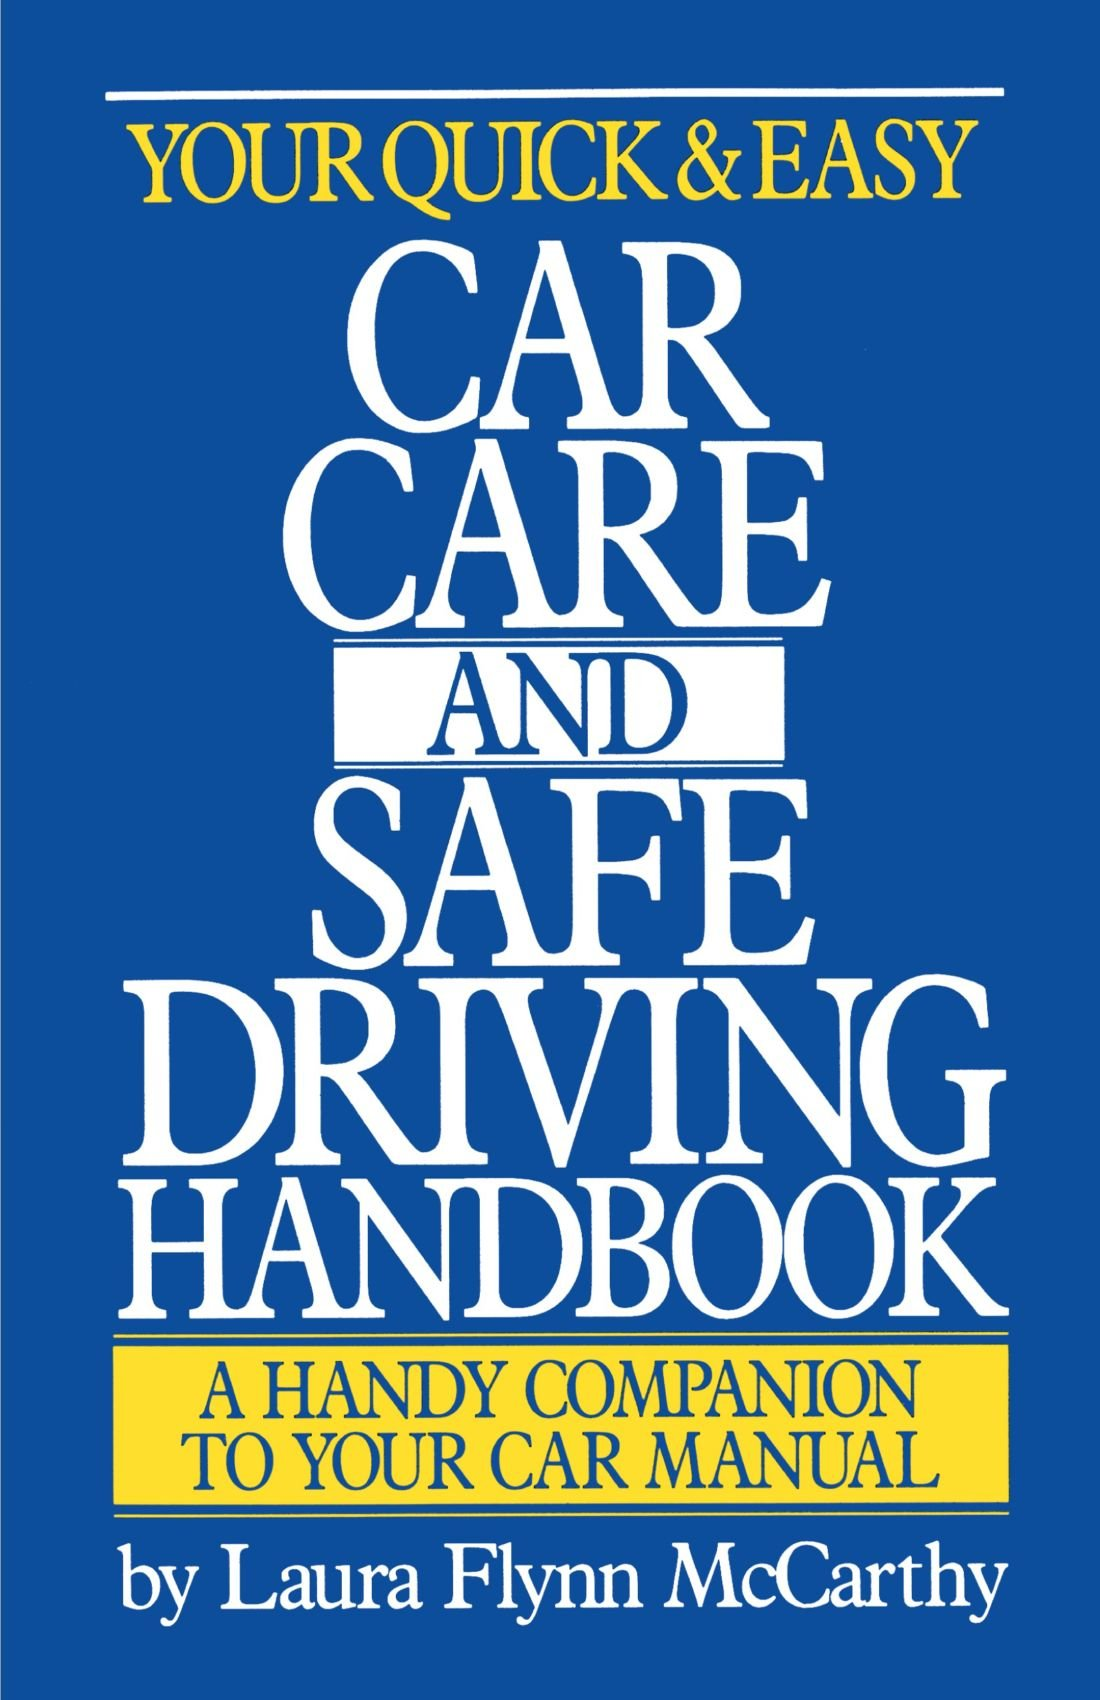 Your Quick and Easy Car Care and Safe Driving Handbook: A Handy Companion to Your Car Manual